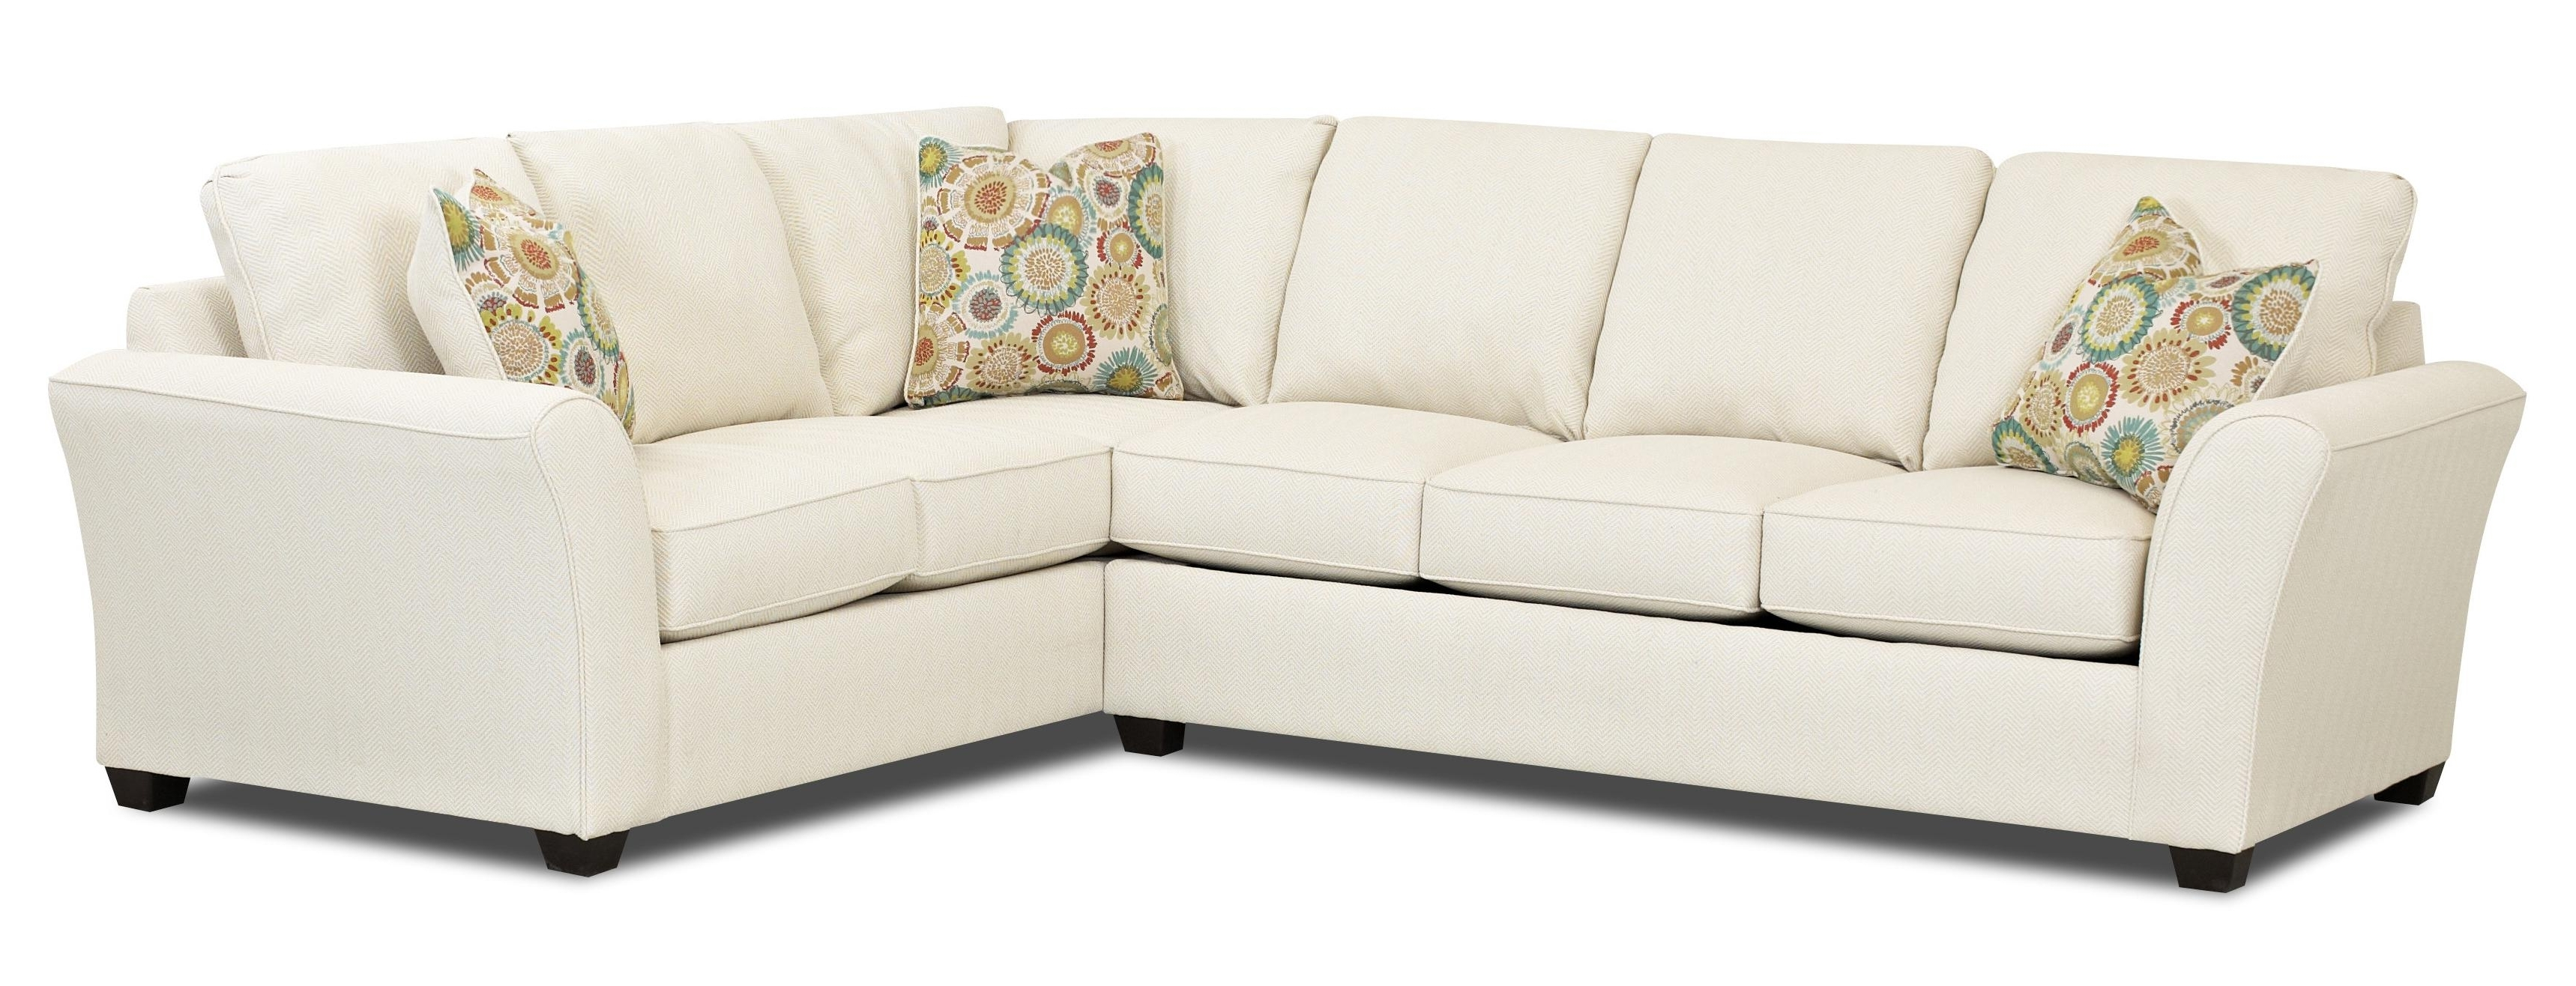 Transitional Sectional Sleeper Sofa With Dreamquest Mattress With Current Sectional Sofas With Queen Size Sleeper (View 3 of 15)